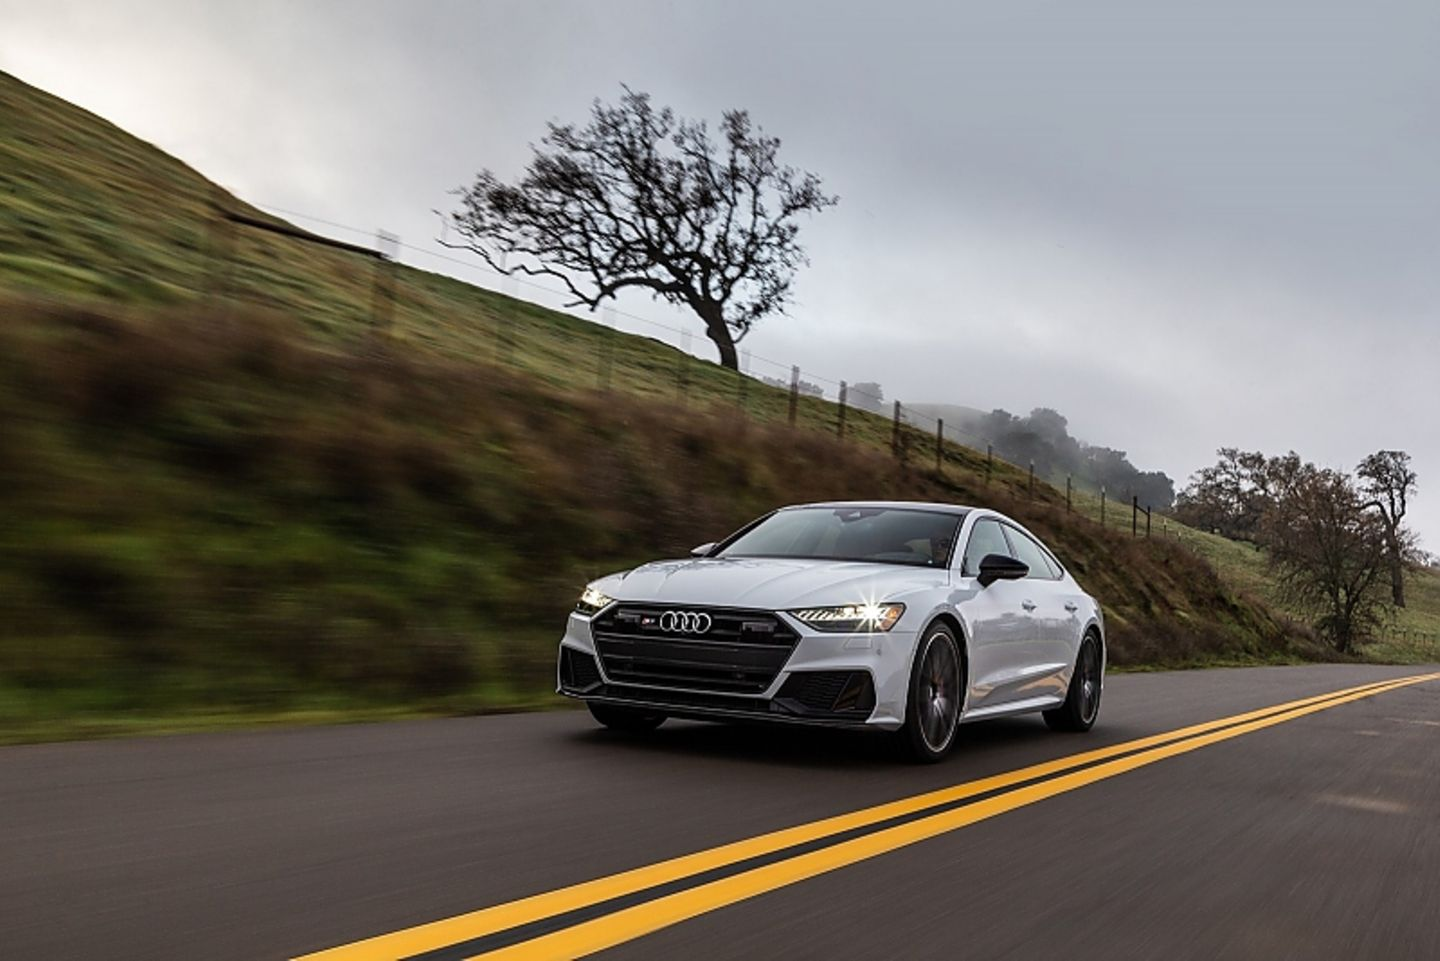 2021 Audi S6 Overview